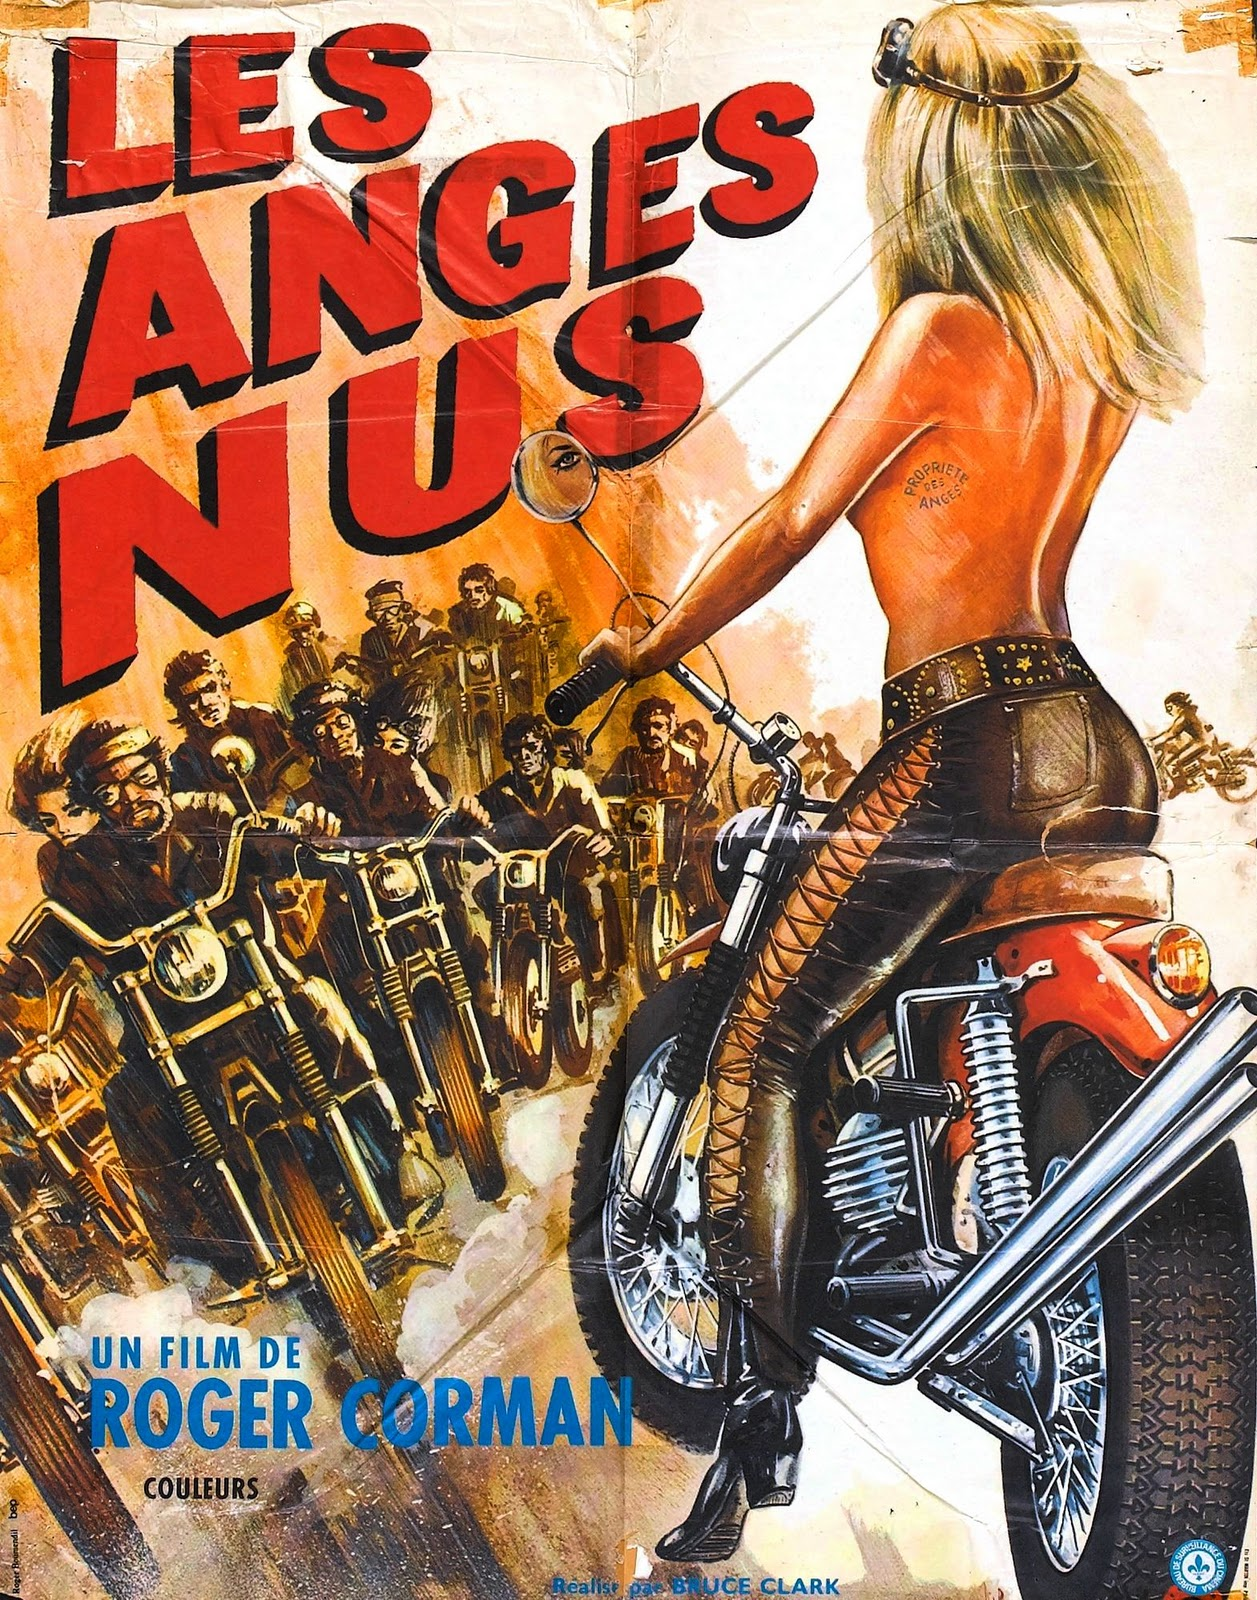 naked_angels_poster_02.jpg